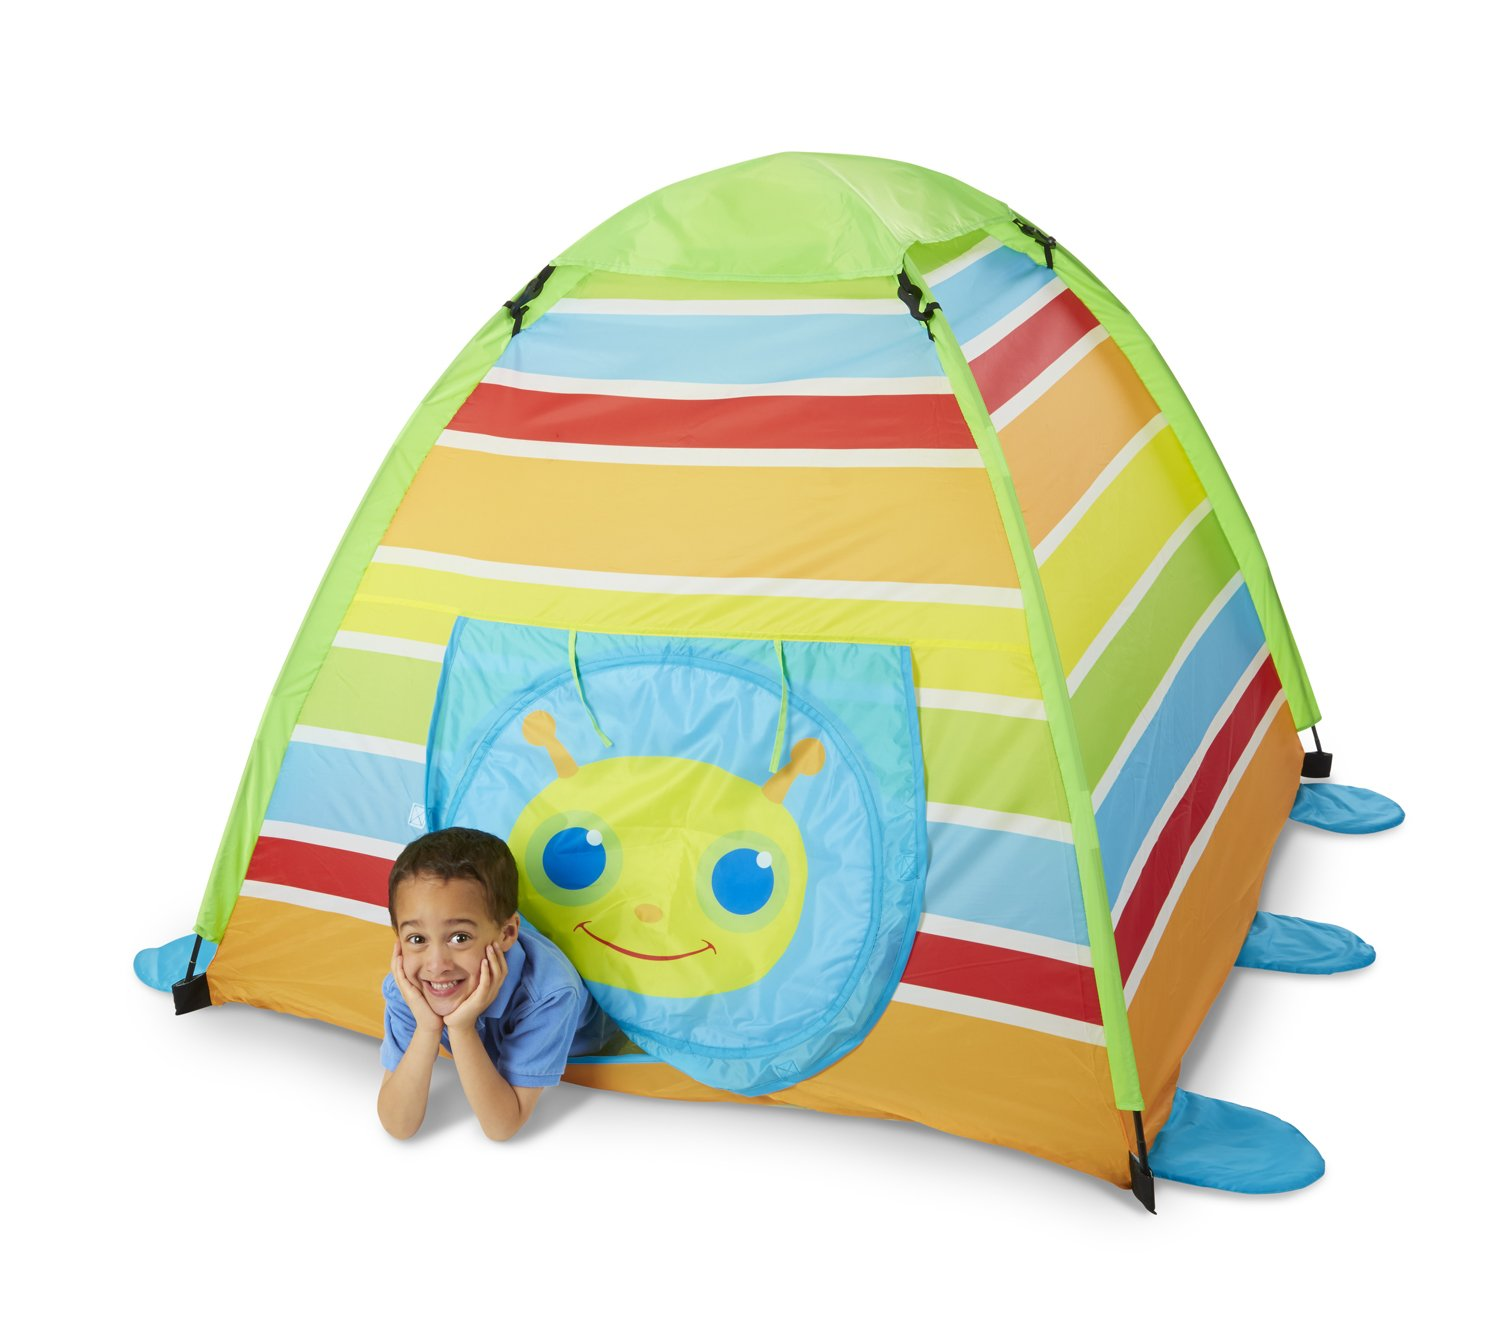 Melissa Doug Giddy Buggy Camping Tent